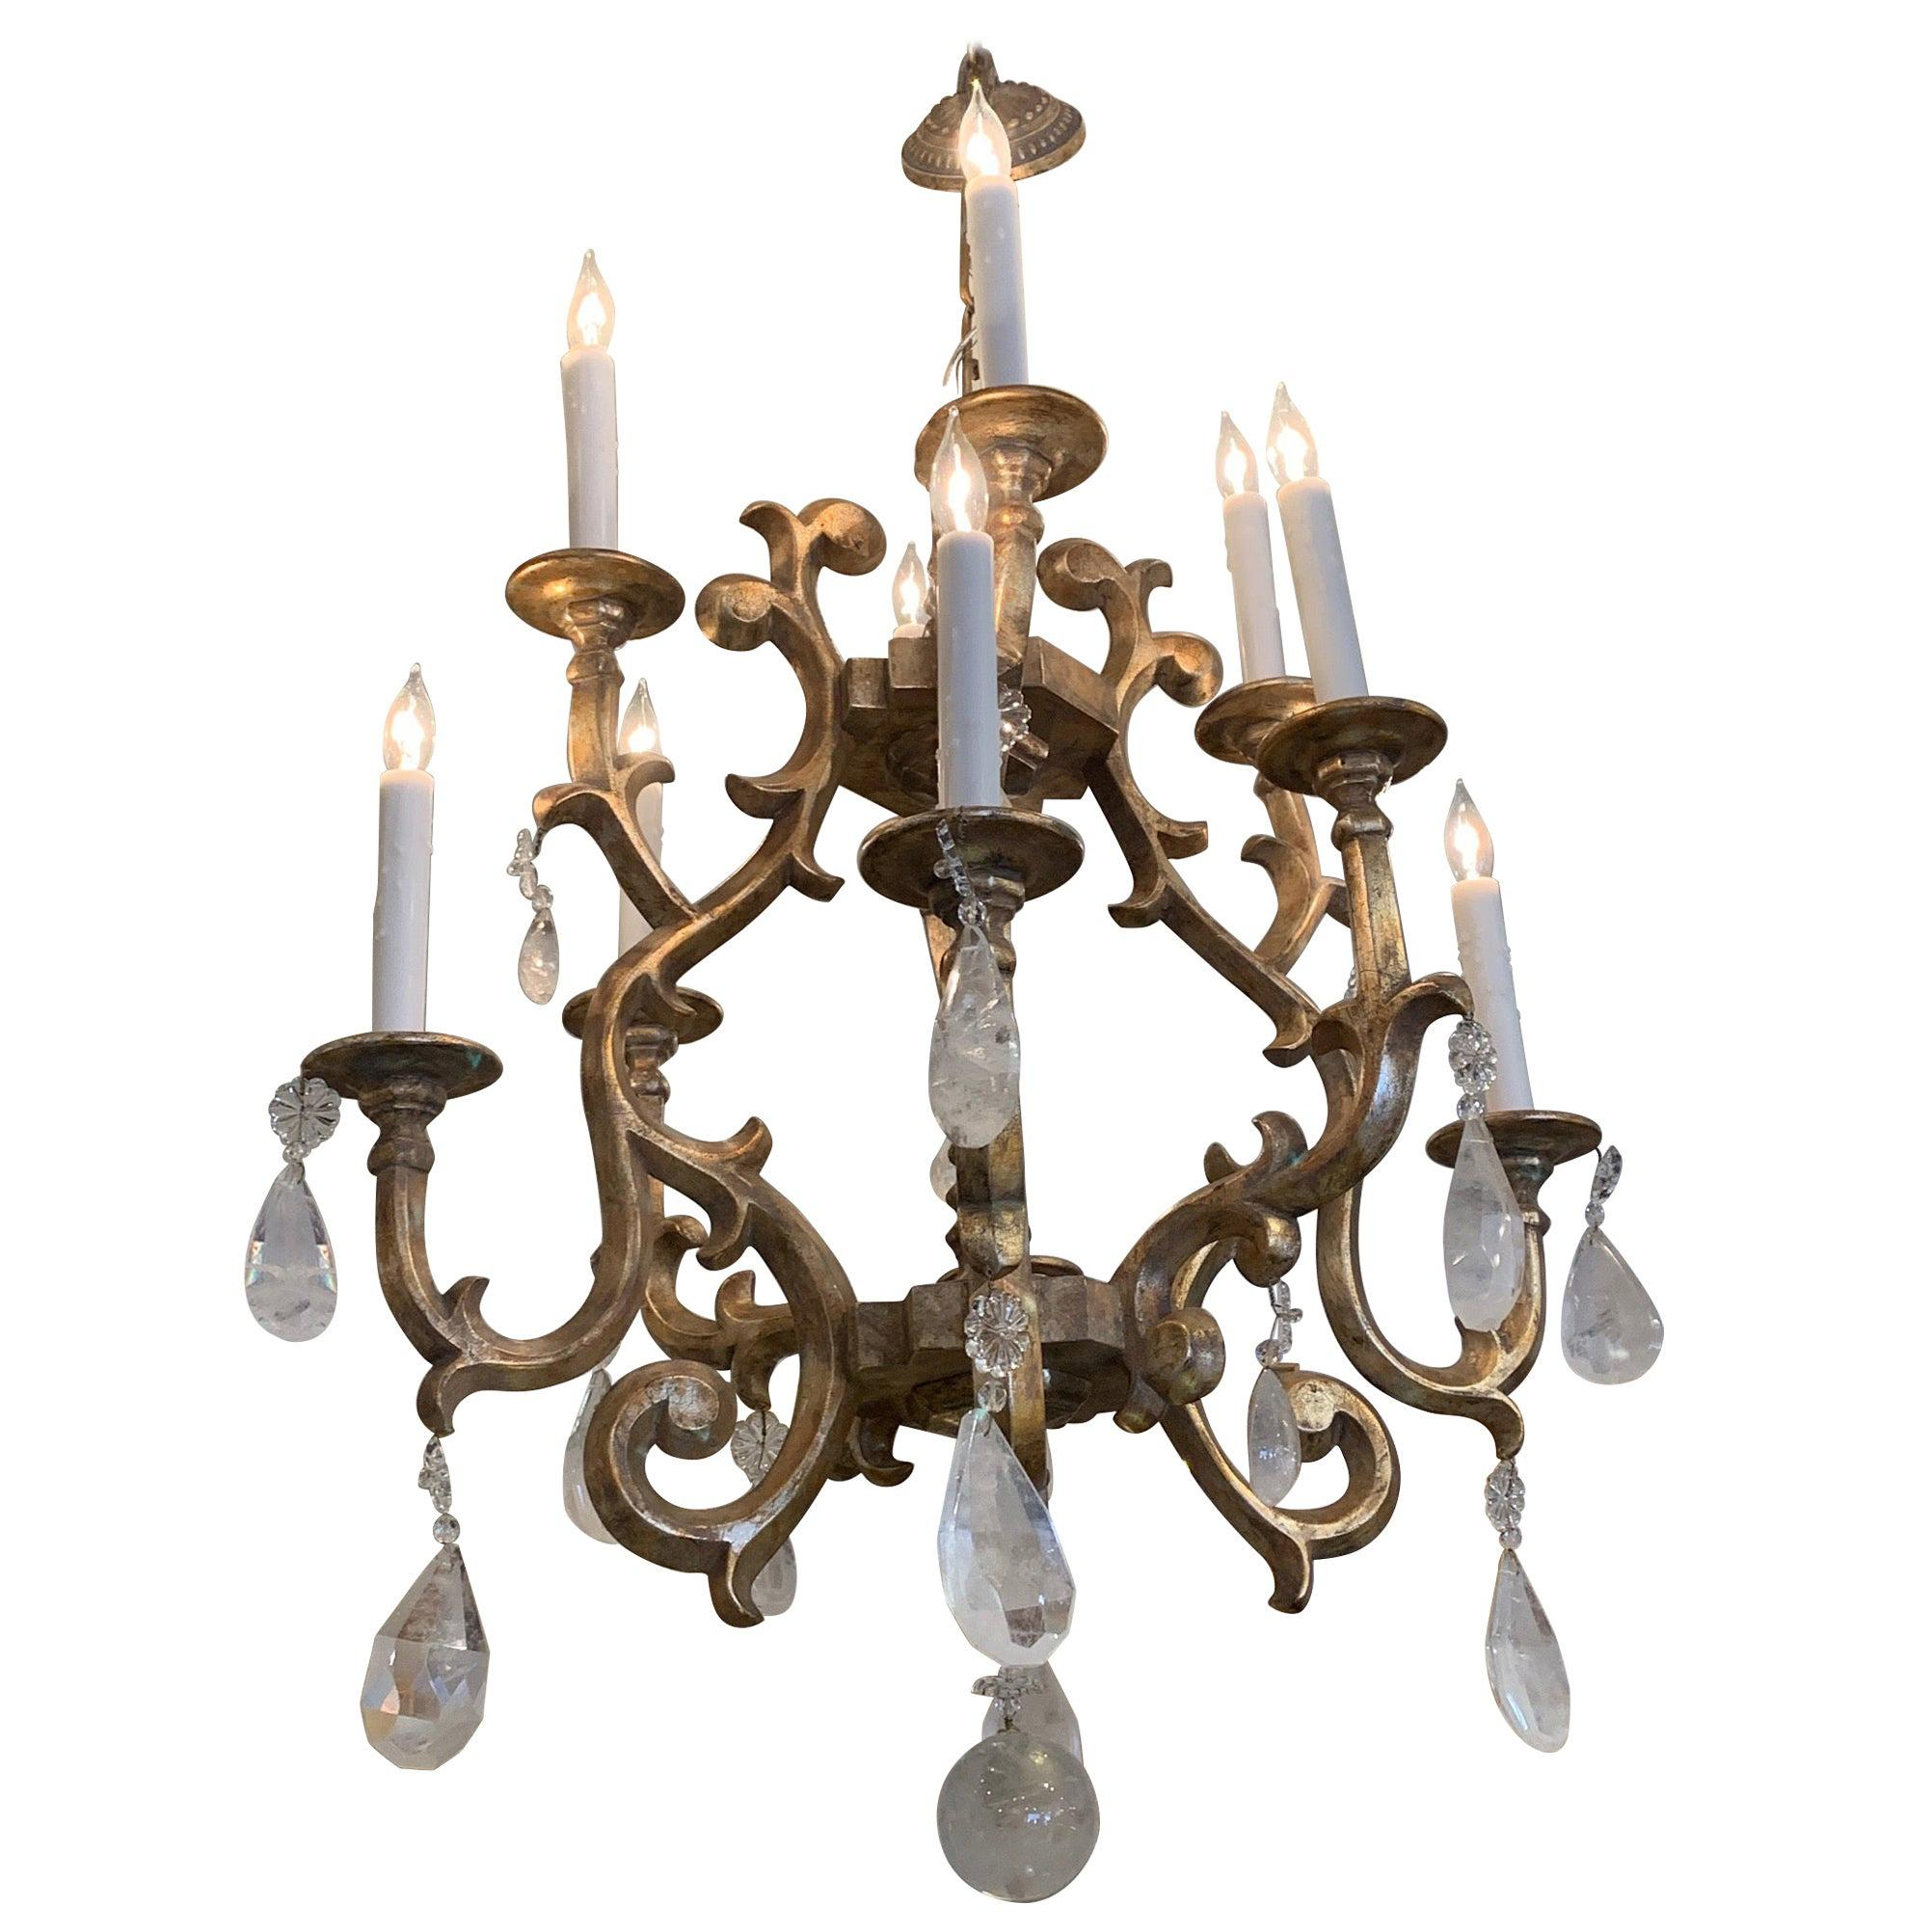 Gutsy Rich Giltwood Chandelier with Very Large Rock Crystals